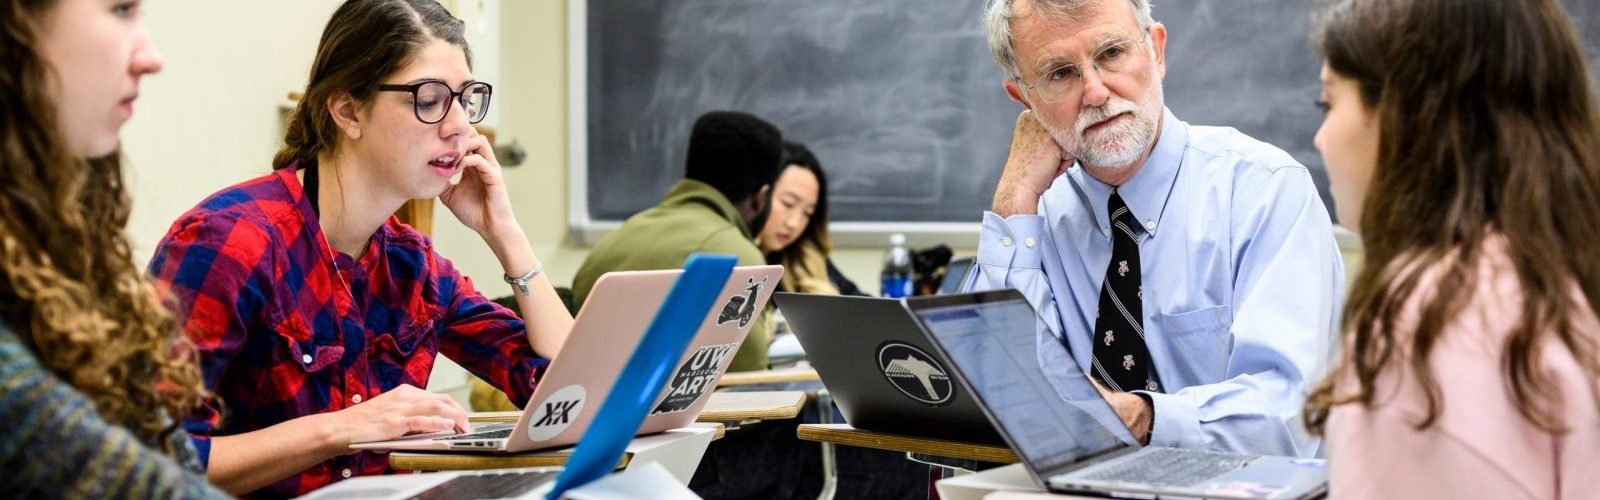 Patrick Remington, professor of population health sciences and associate dean in the School of Medicine and Public Health, participates in a group discussion with students.